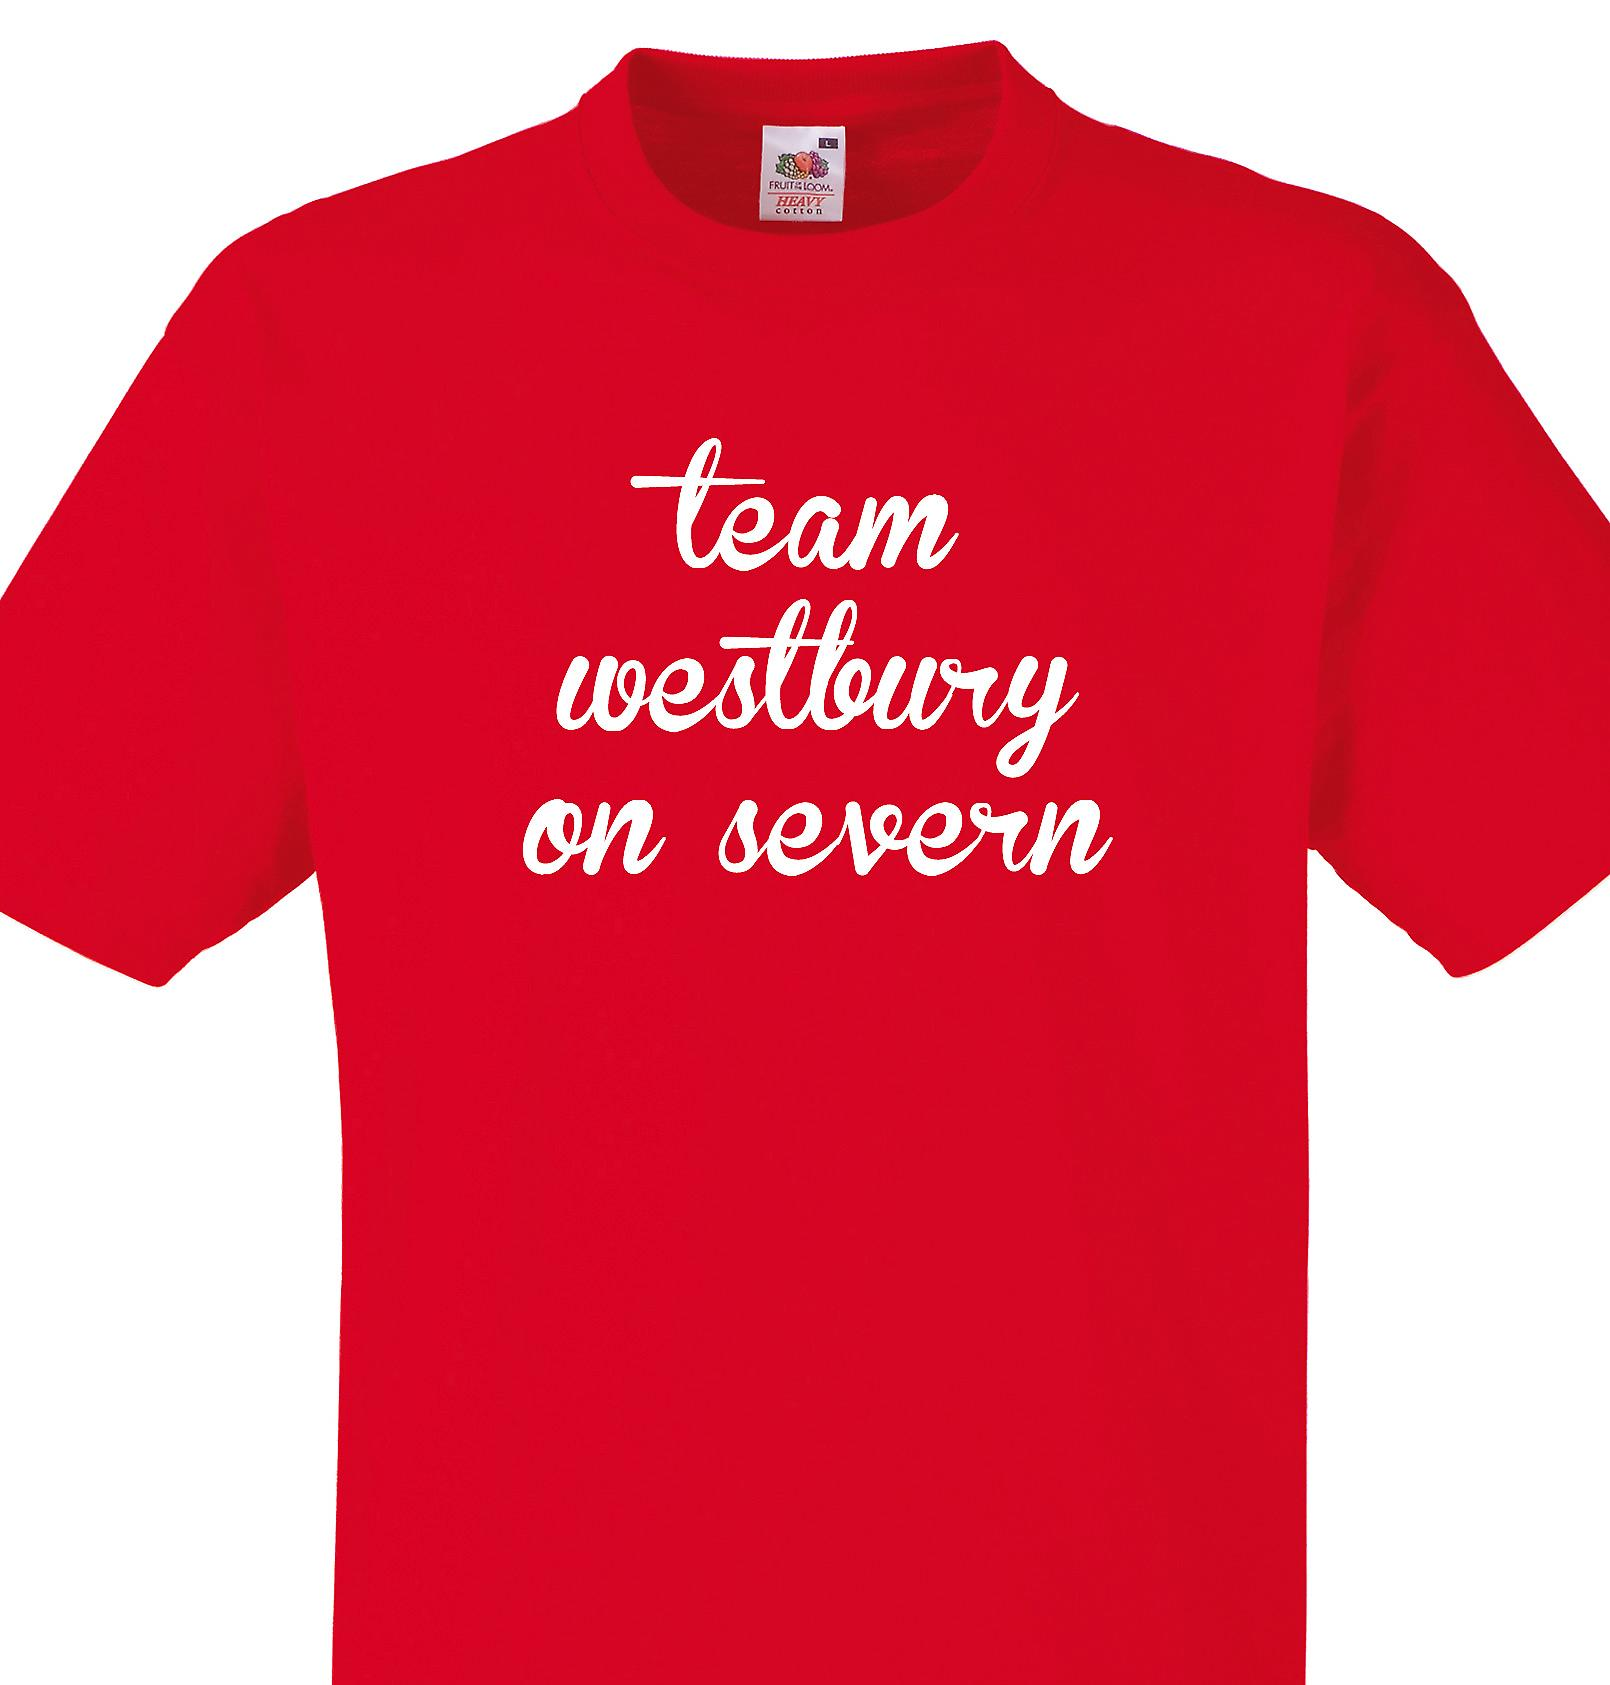 Team Westbury on severn Red T shirt